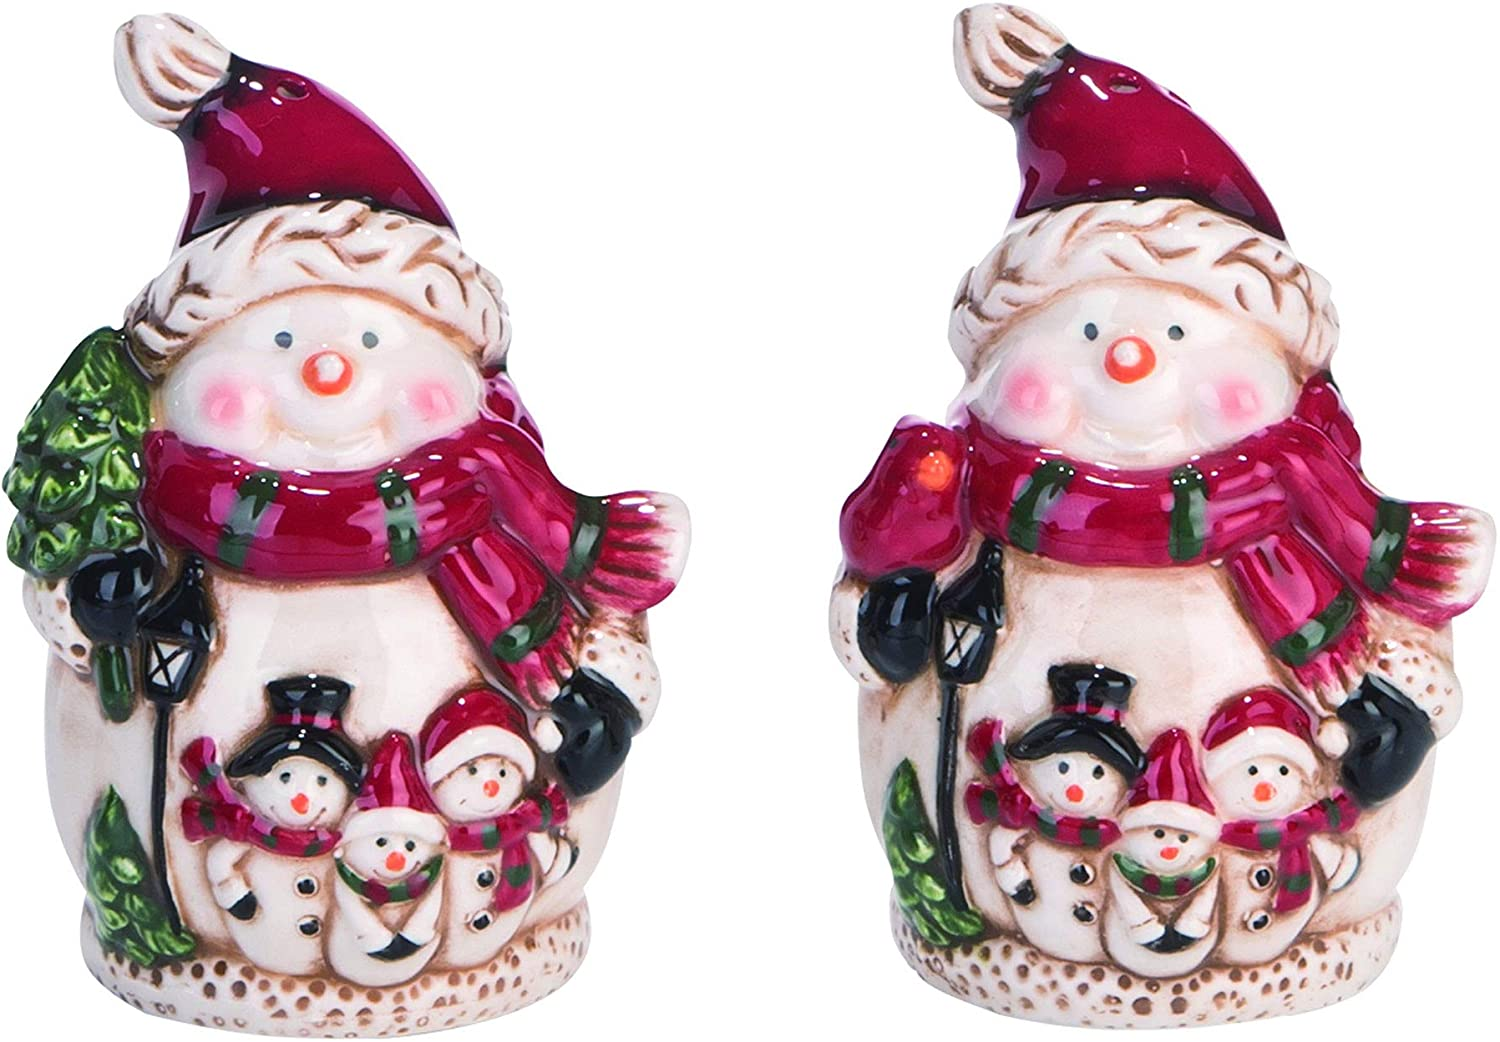 Snowman Glossy White 4 x 3 Dolomite Ceramic Christmas Salt and Pepper Shaker Set